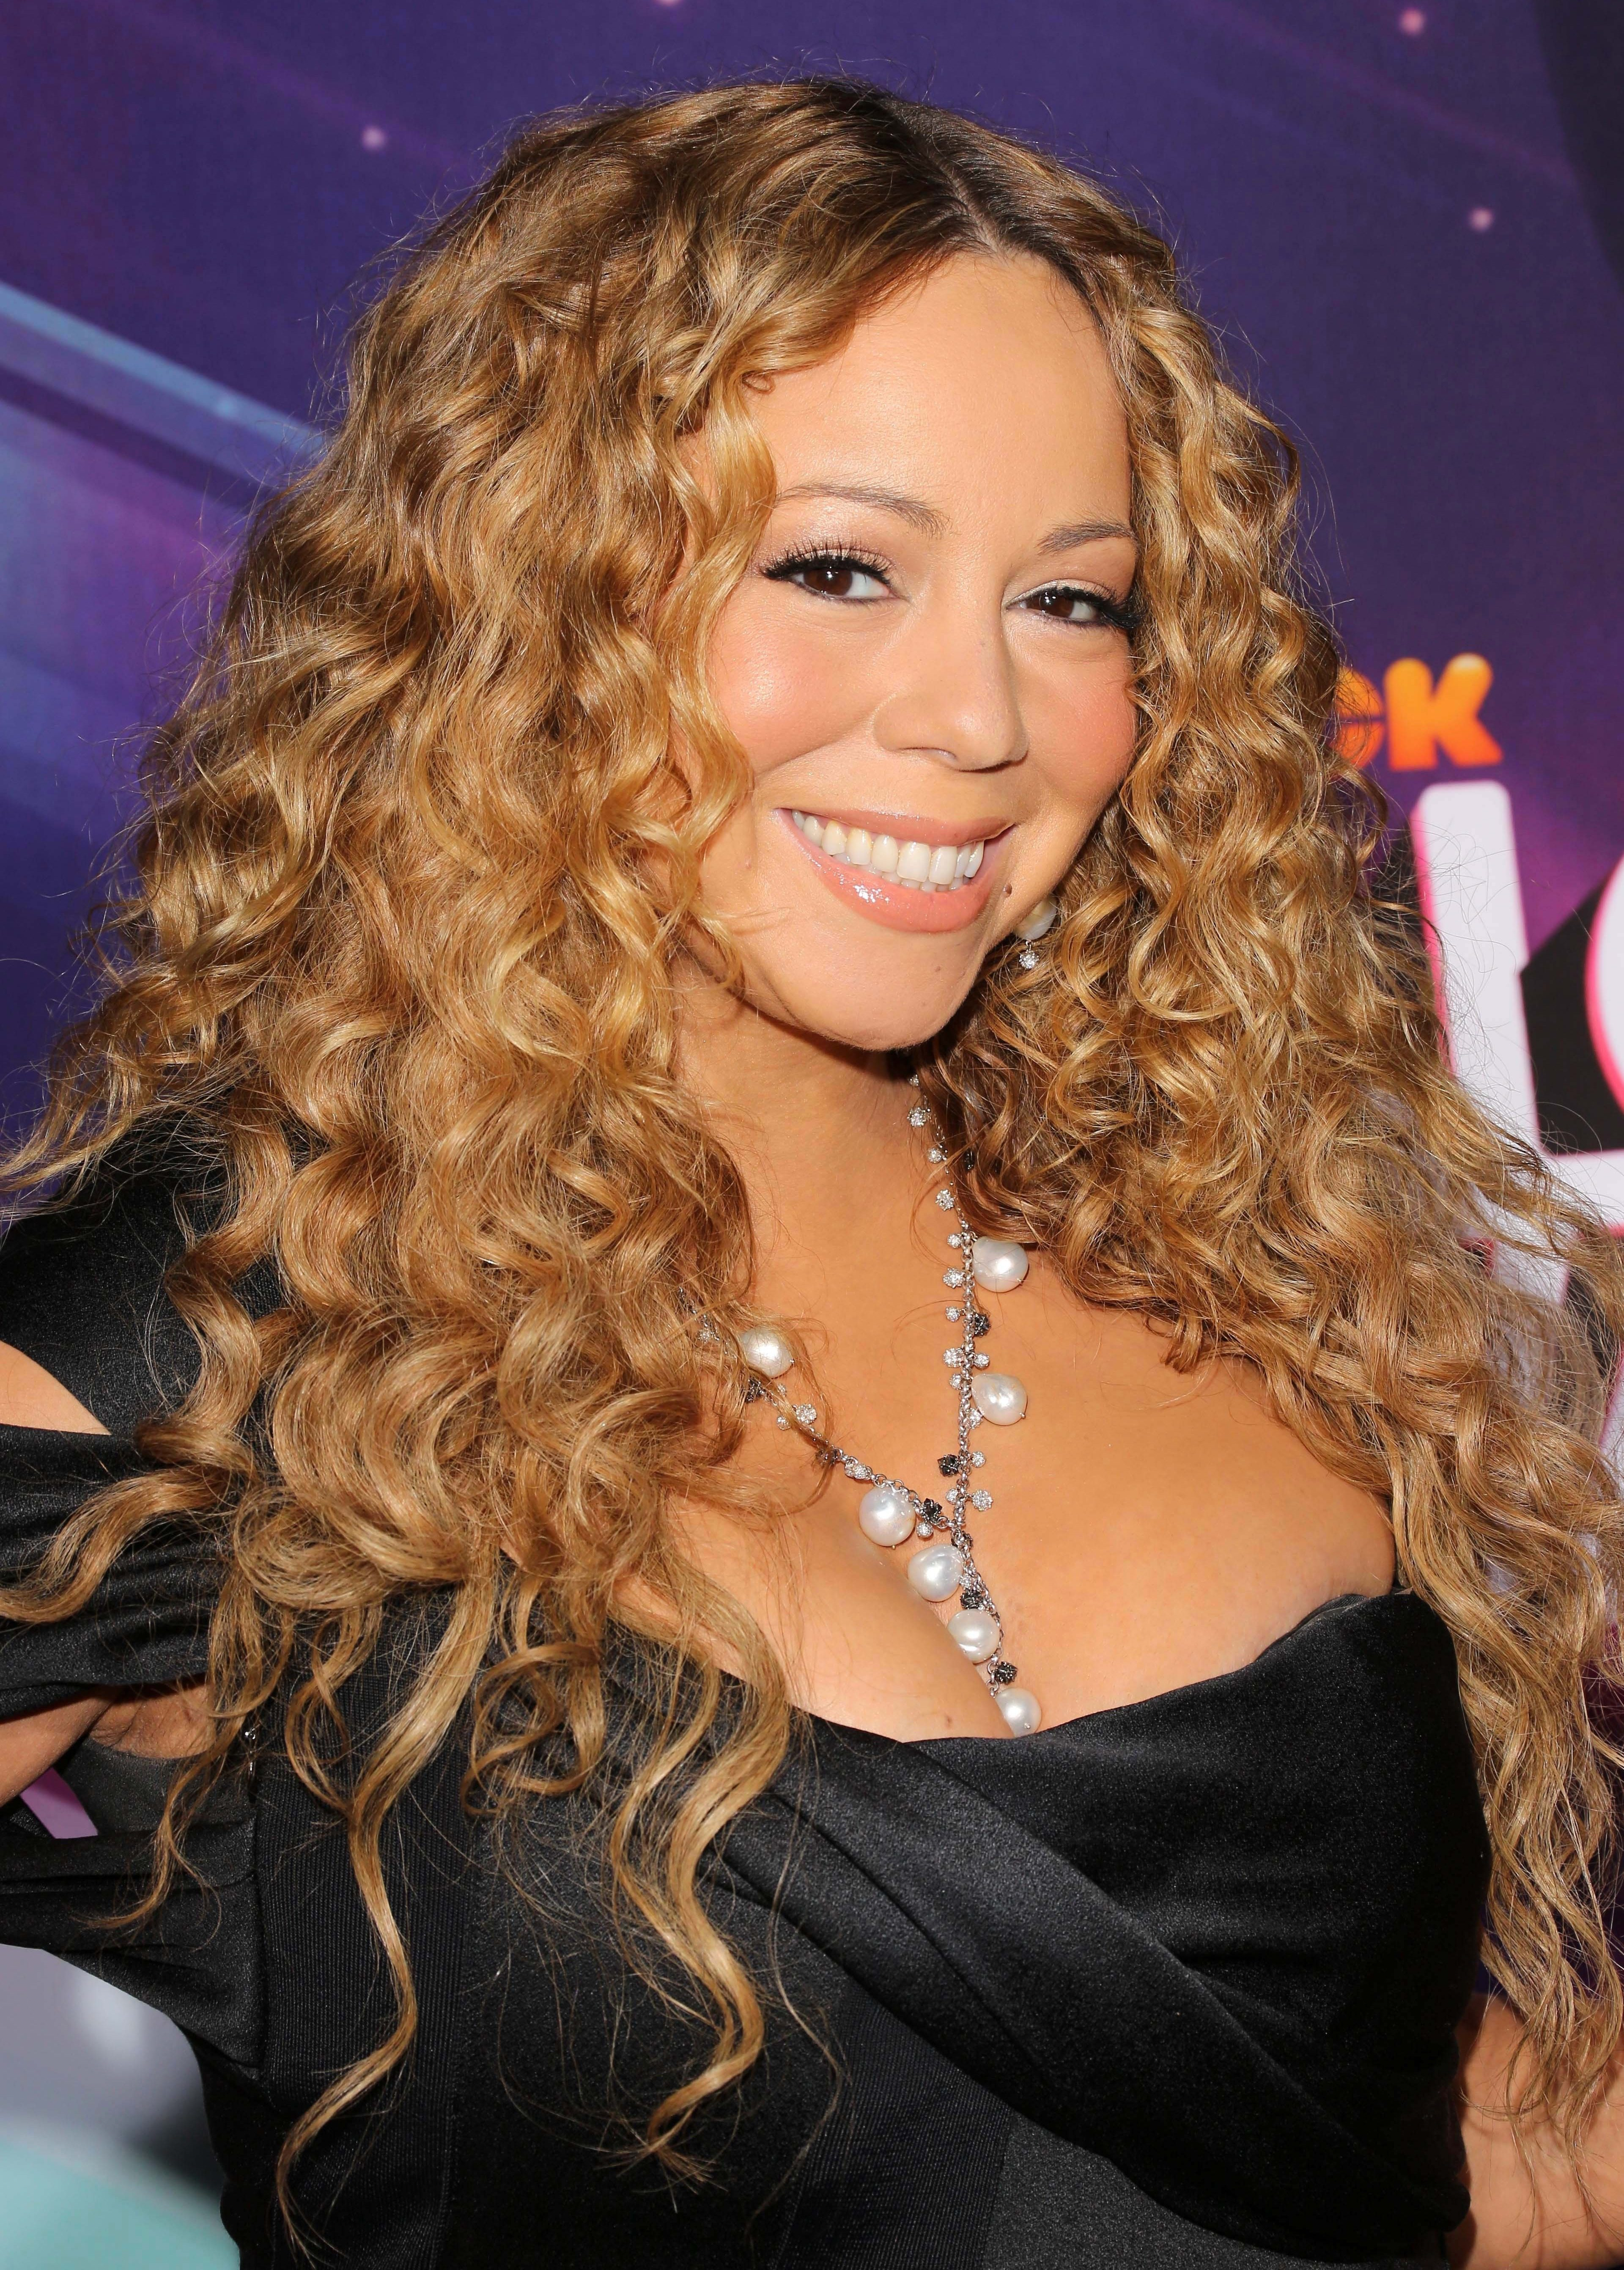 Mariah's Long Curled Hair Parted in the Middle